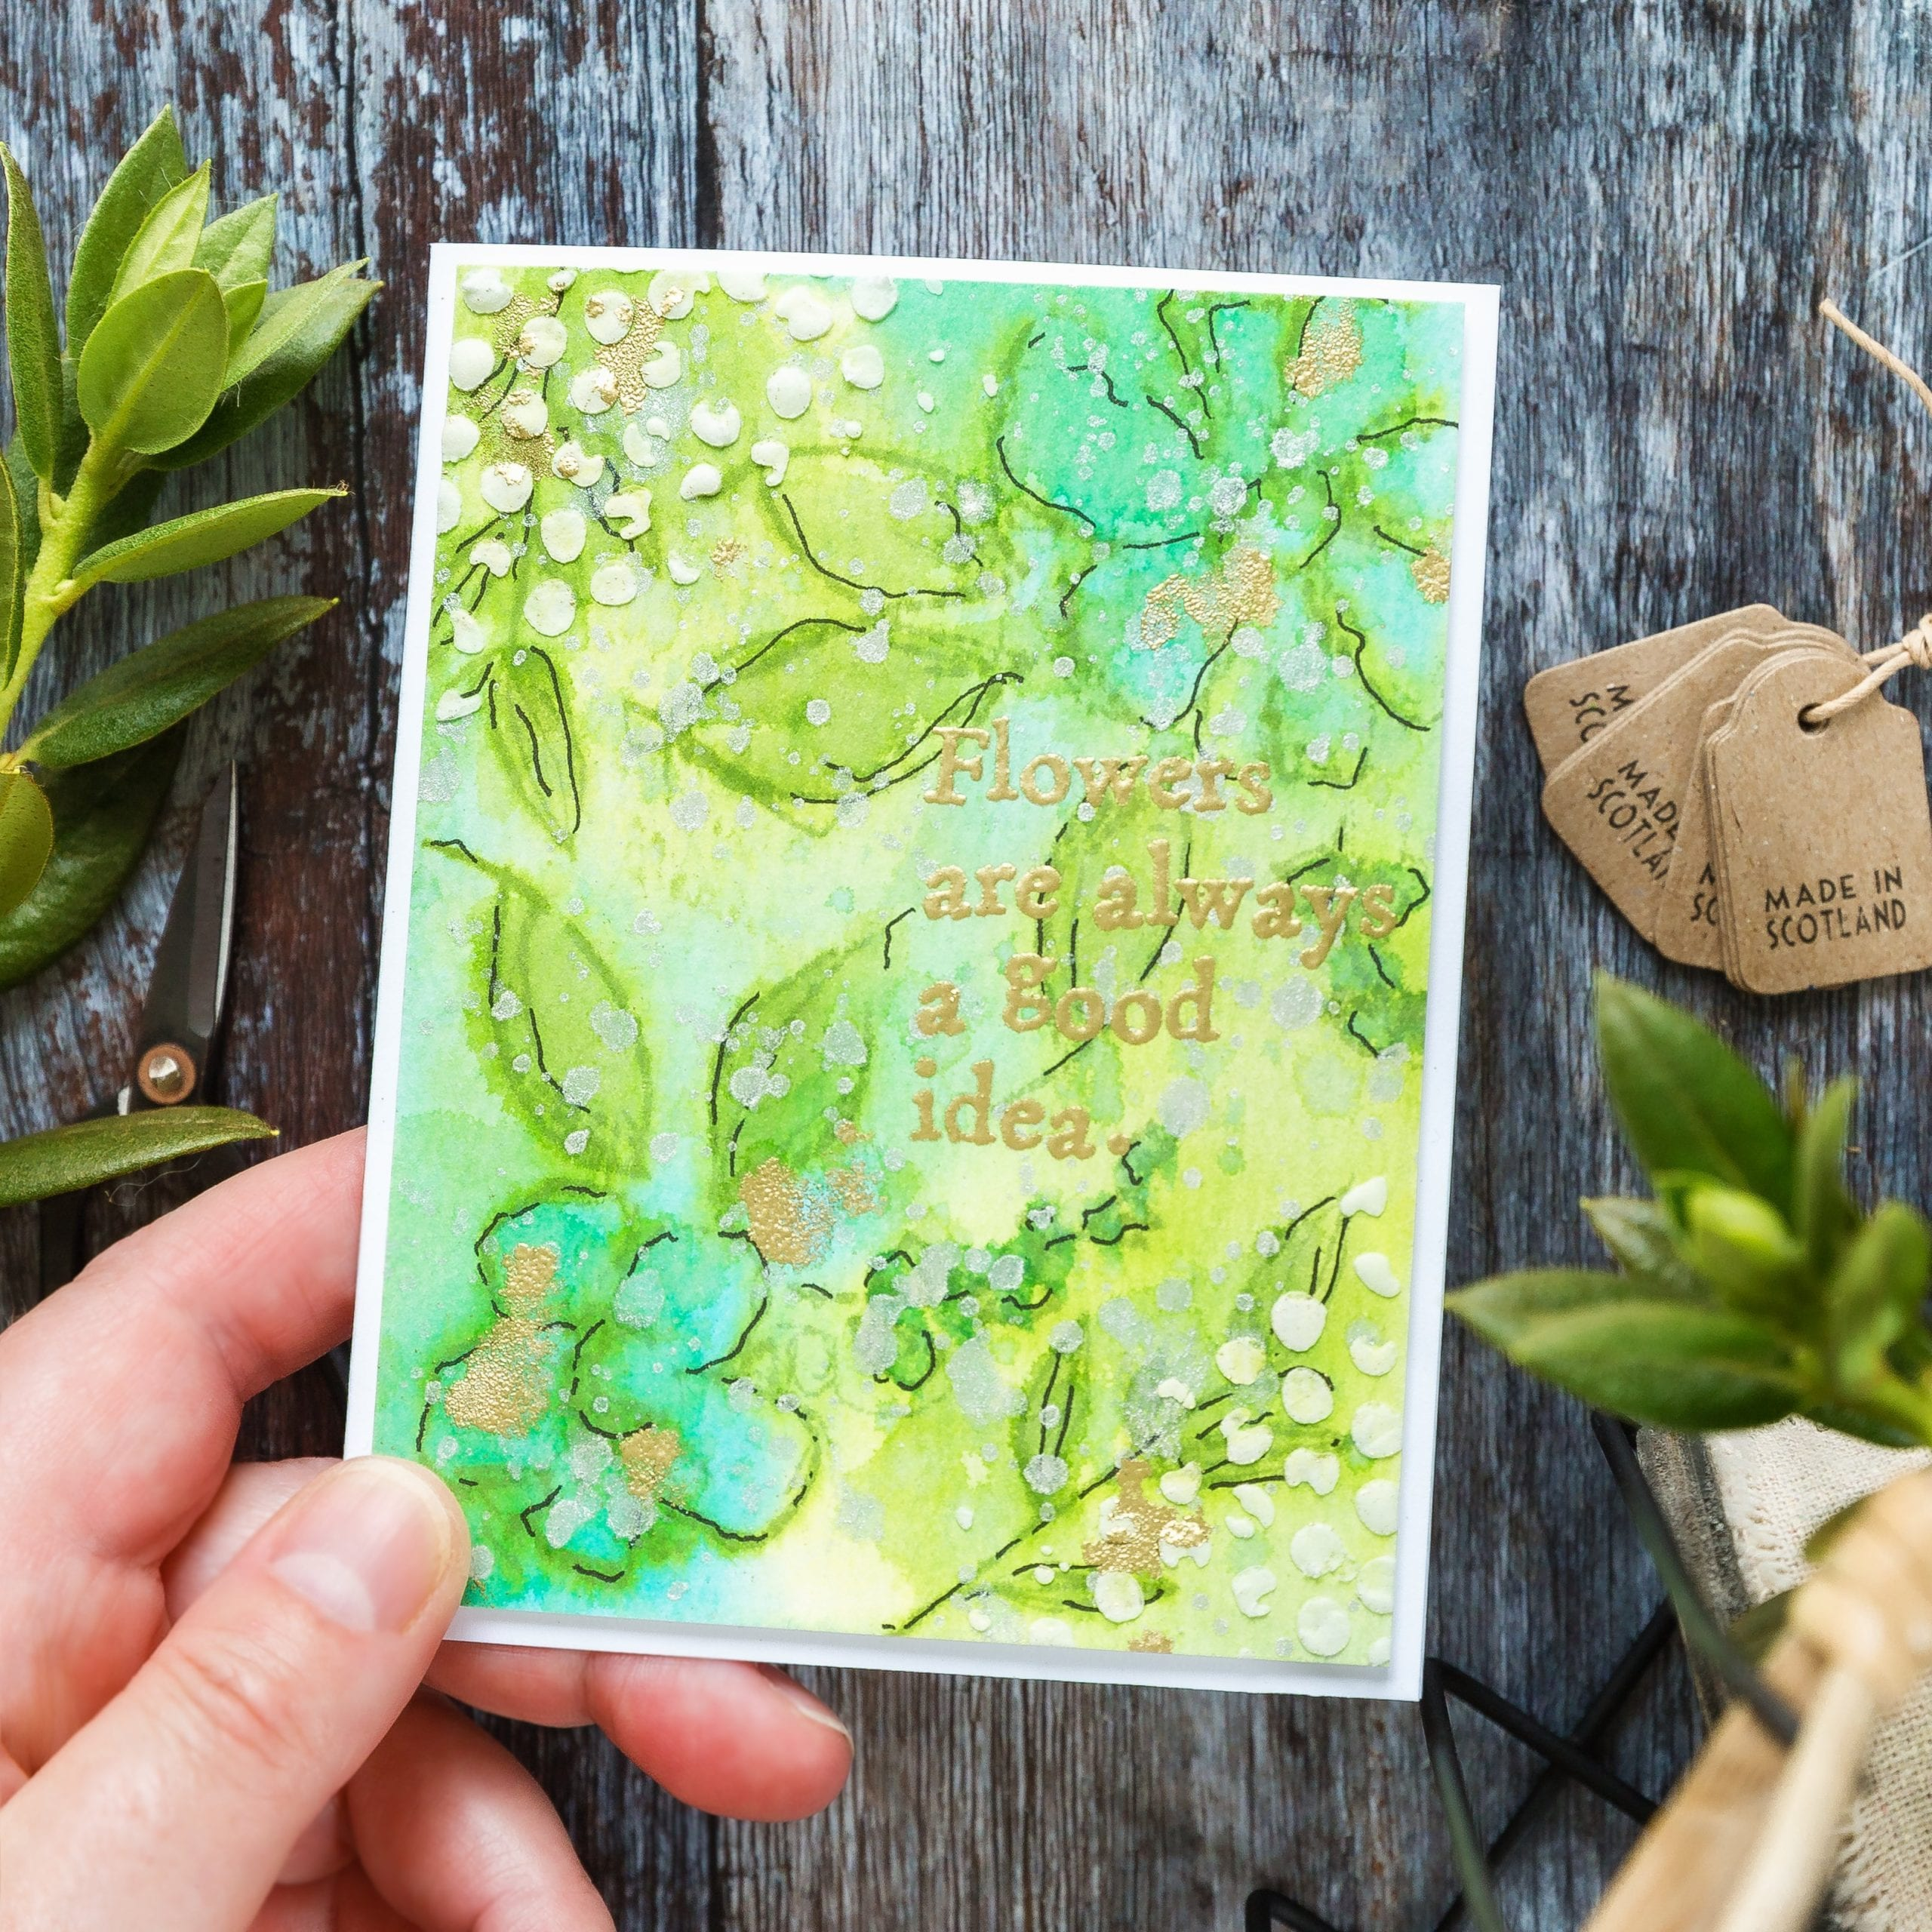 Layered texture over watercolour handmade card by Debby Hughes. Find out more here: https://limedoodledesign.com/2019/09/layered-texture-over-watercolour/